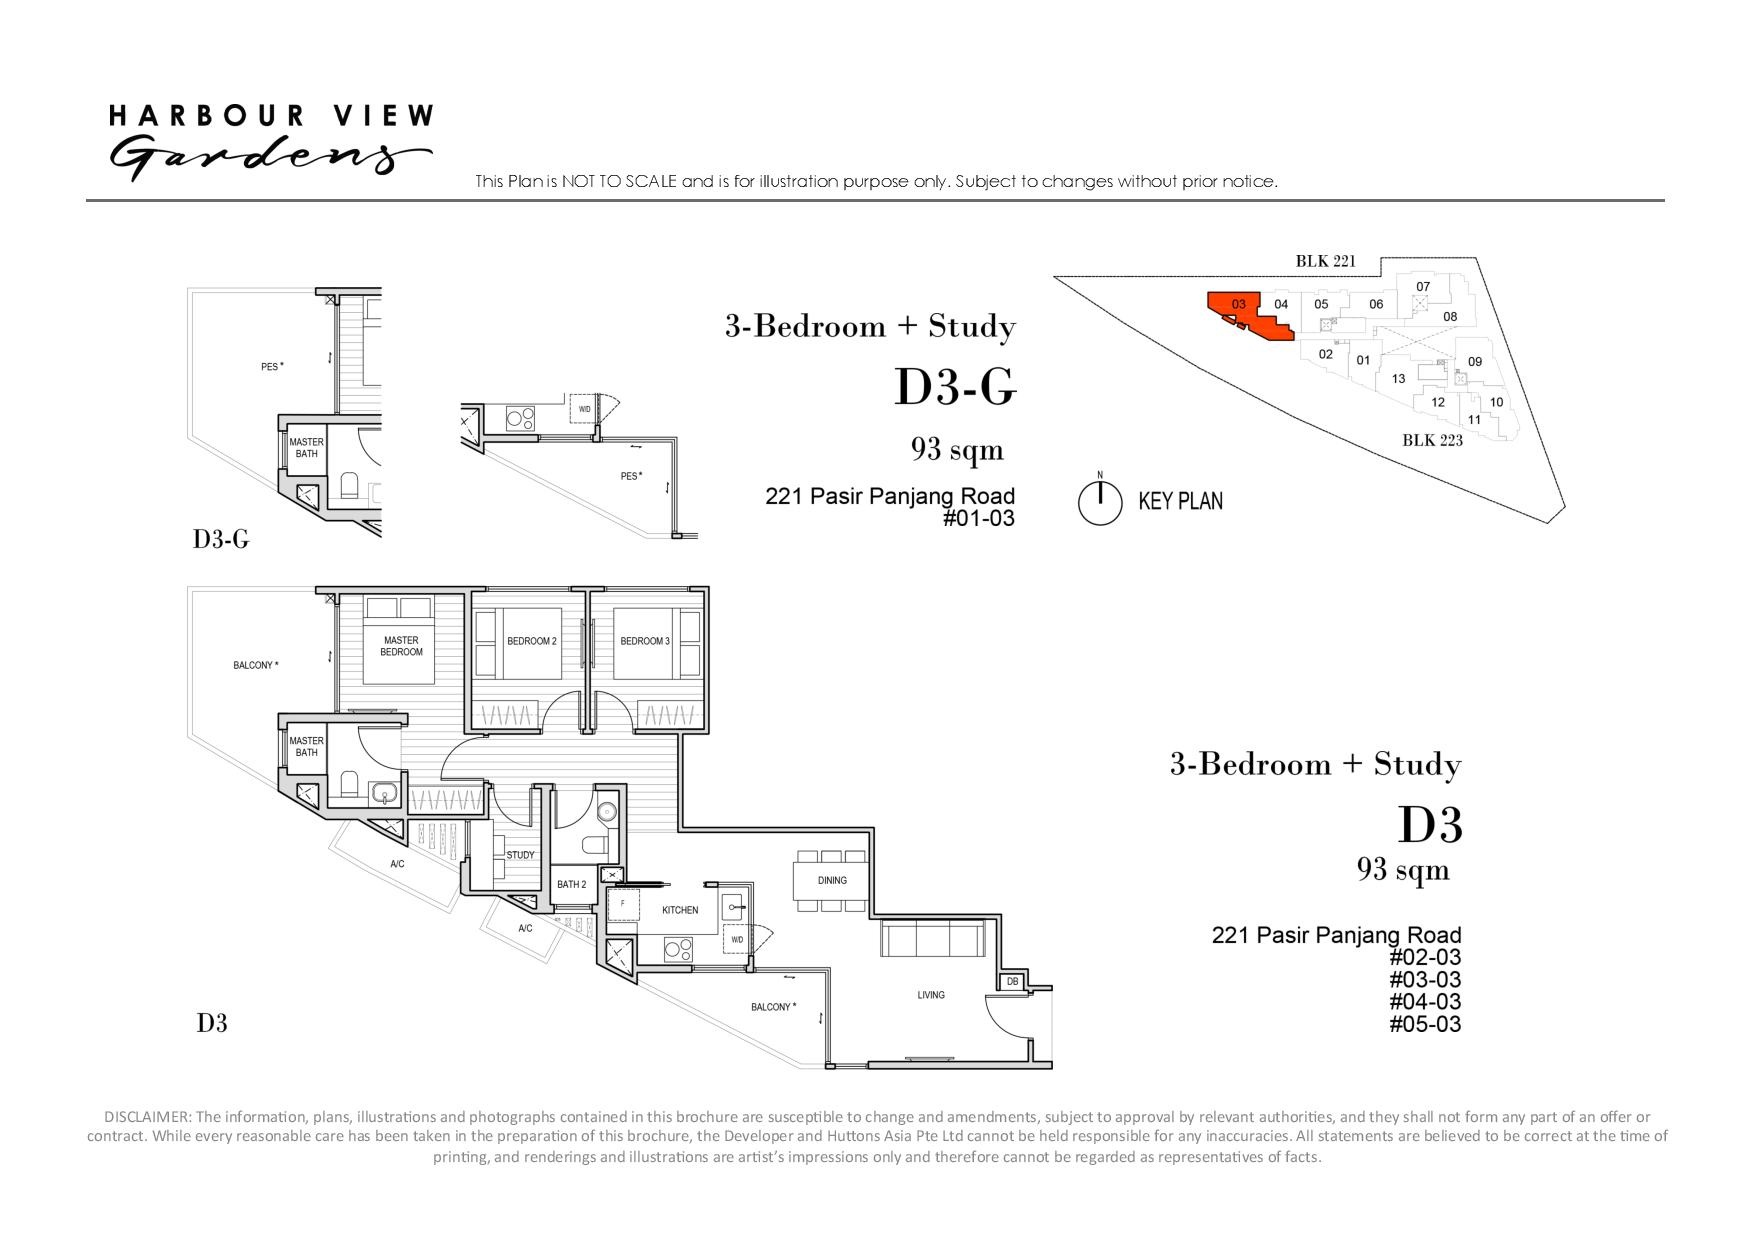 Harbour View Gardens 3 Bedroom + Study Floor Plans Type D3, D3-G